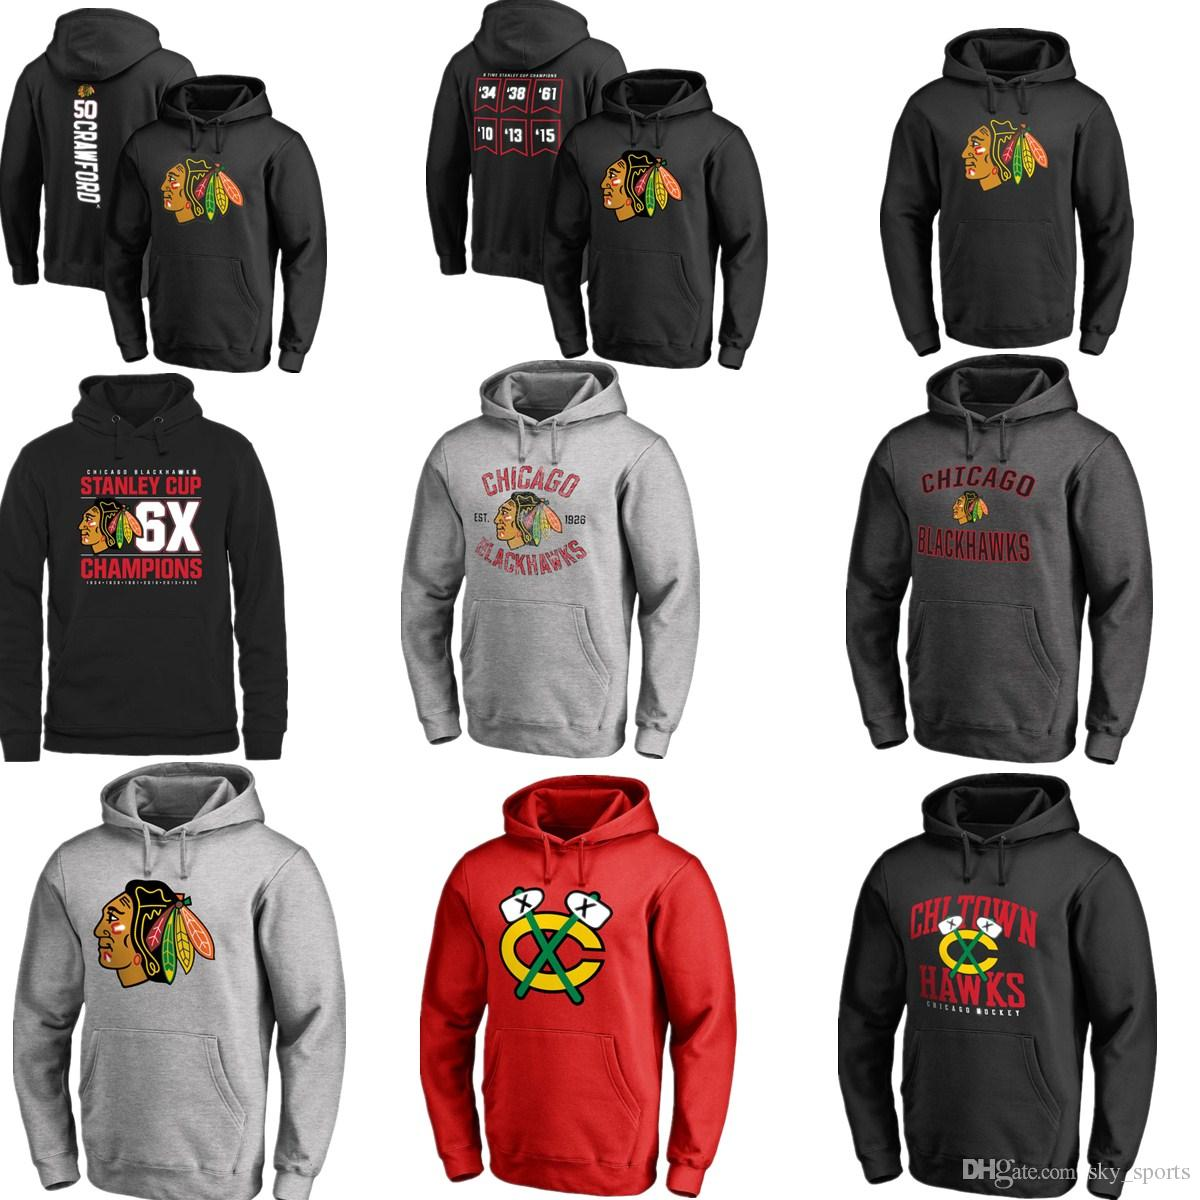 best website 659bb 2587a Name Sky Toews And From Nhl 2019 19 Dhgate 88 Chicago ...